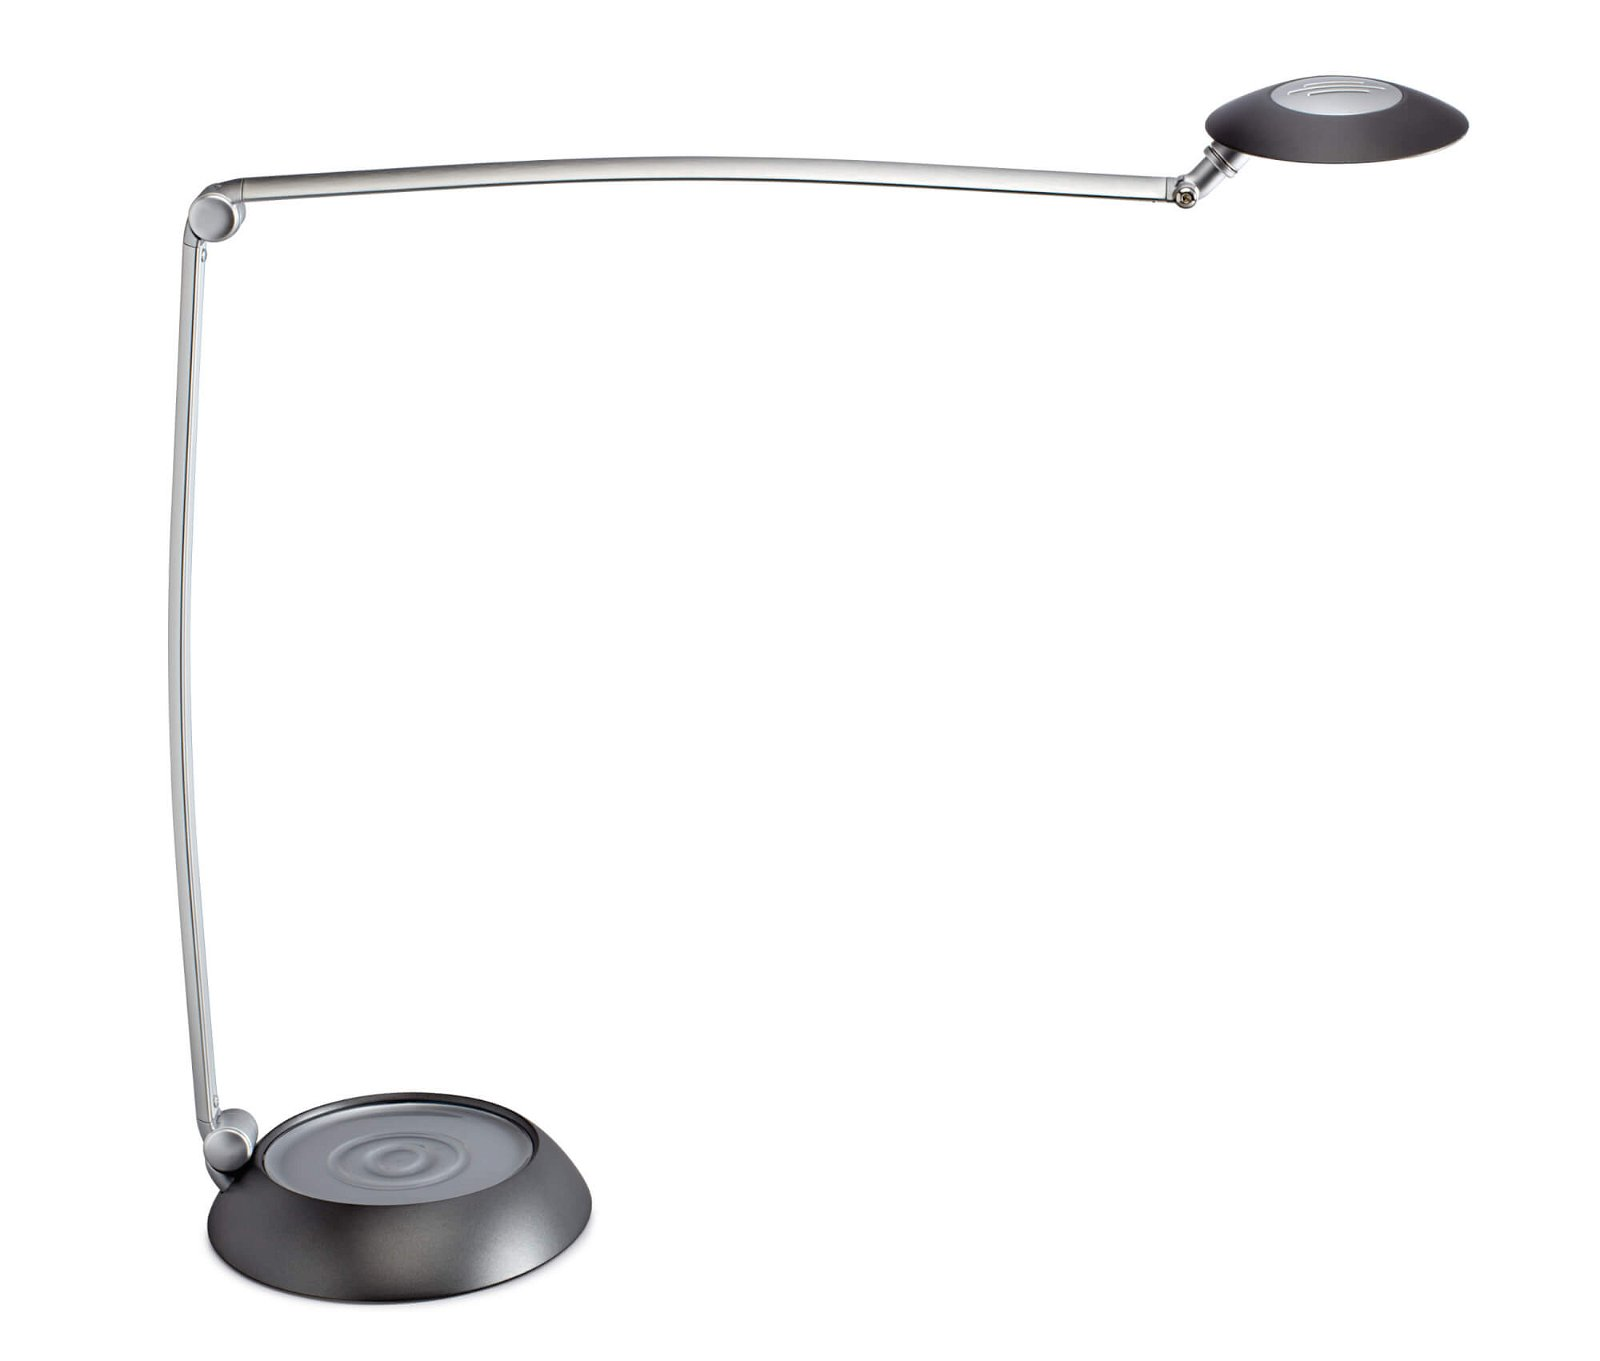 LED-Tischleuchte MAULspace, dimmbar, silber